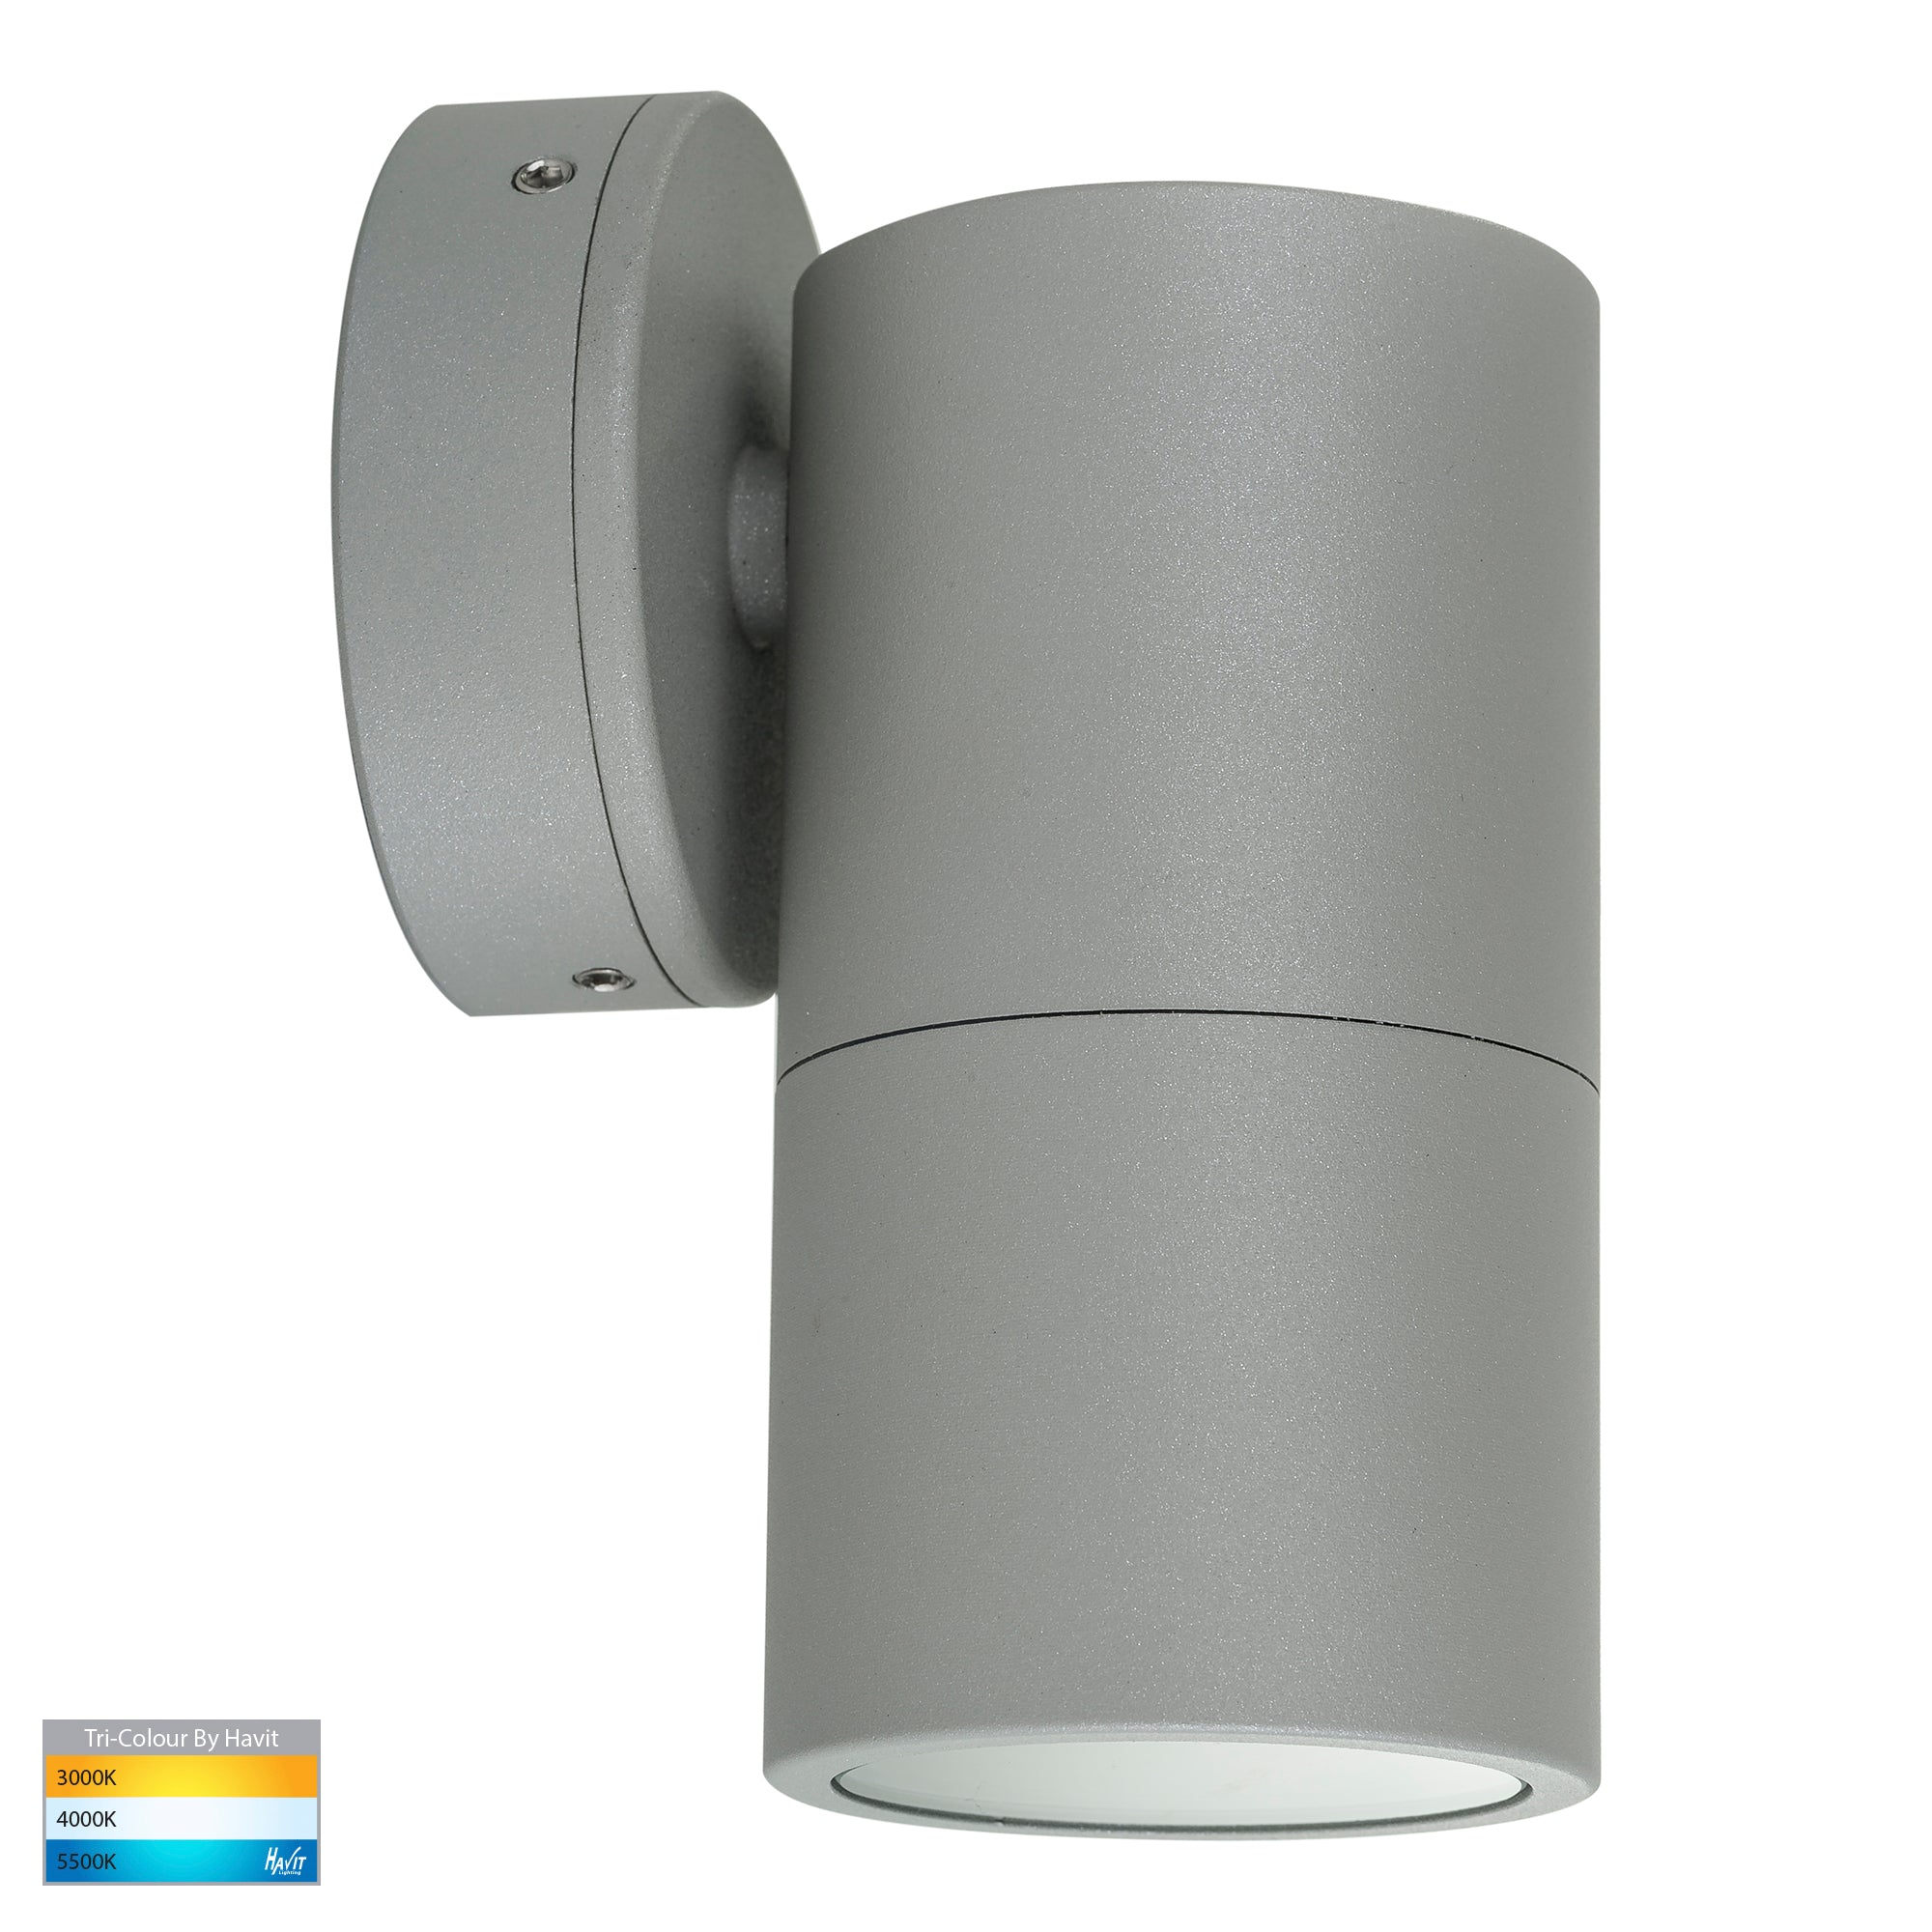 HV1145T-HV1147T - Tivah Silver TRI Colour Fixed Down Wall Pillar Lights